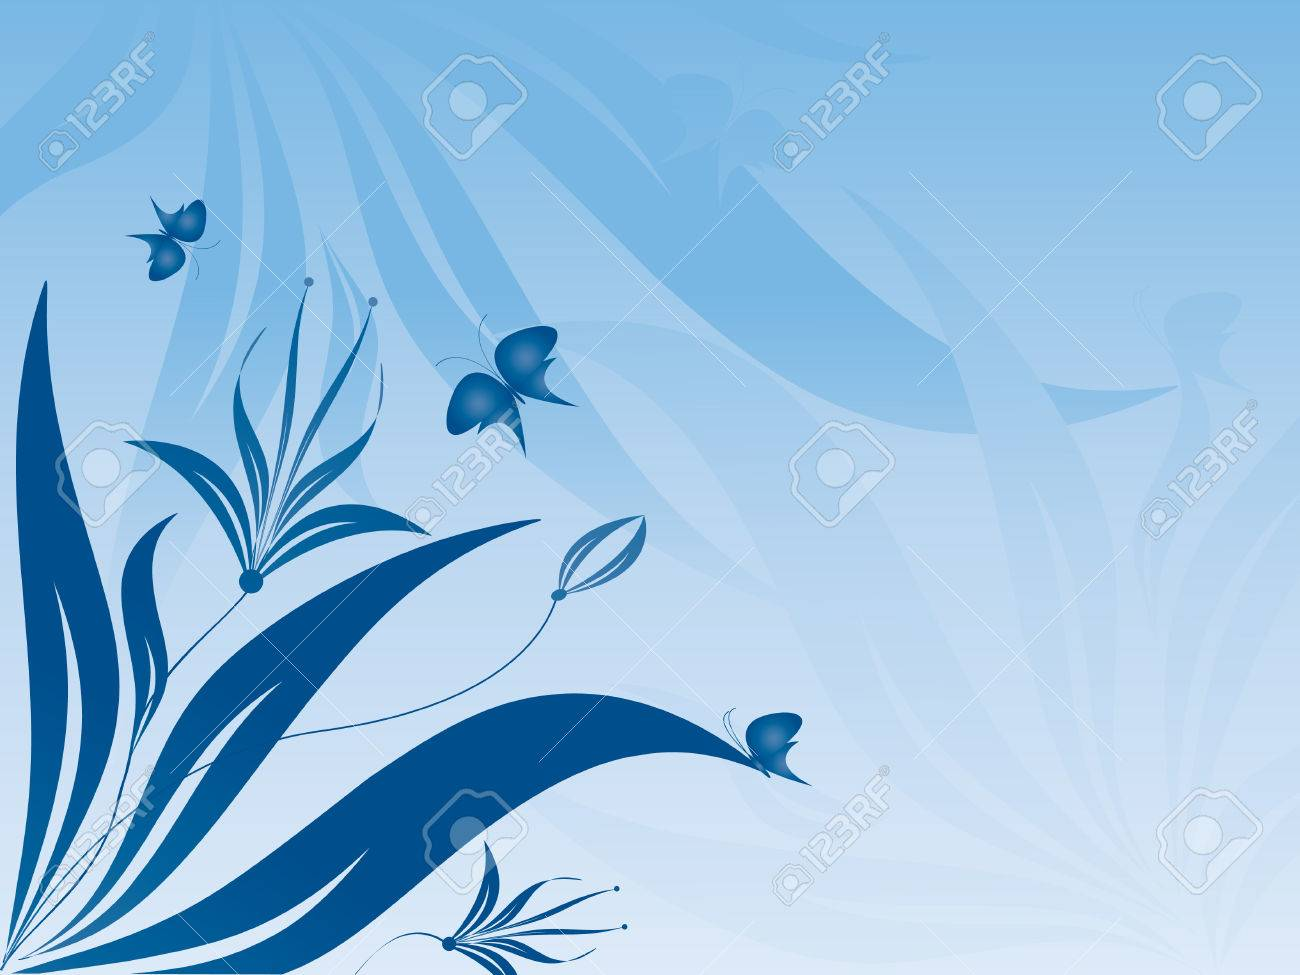 floral abstract vector with butterflies in blue colors. Gradients used Stock Vector - 3101238